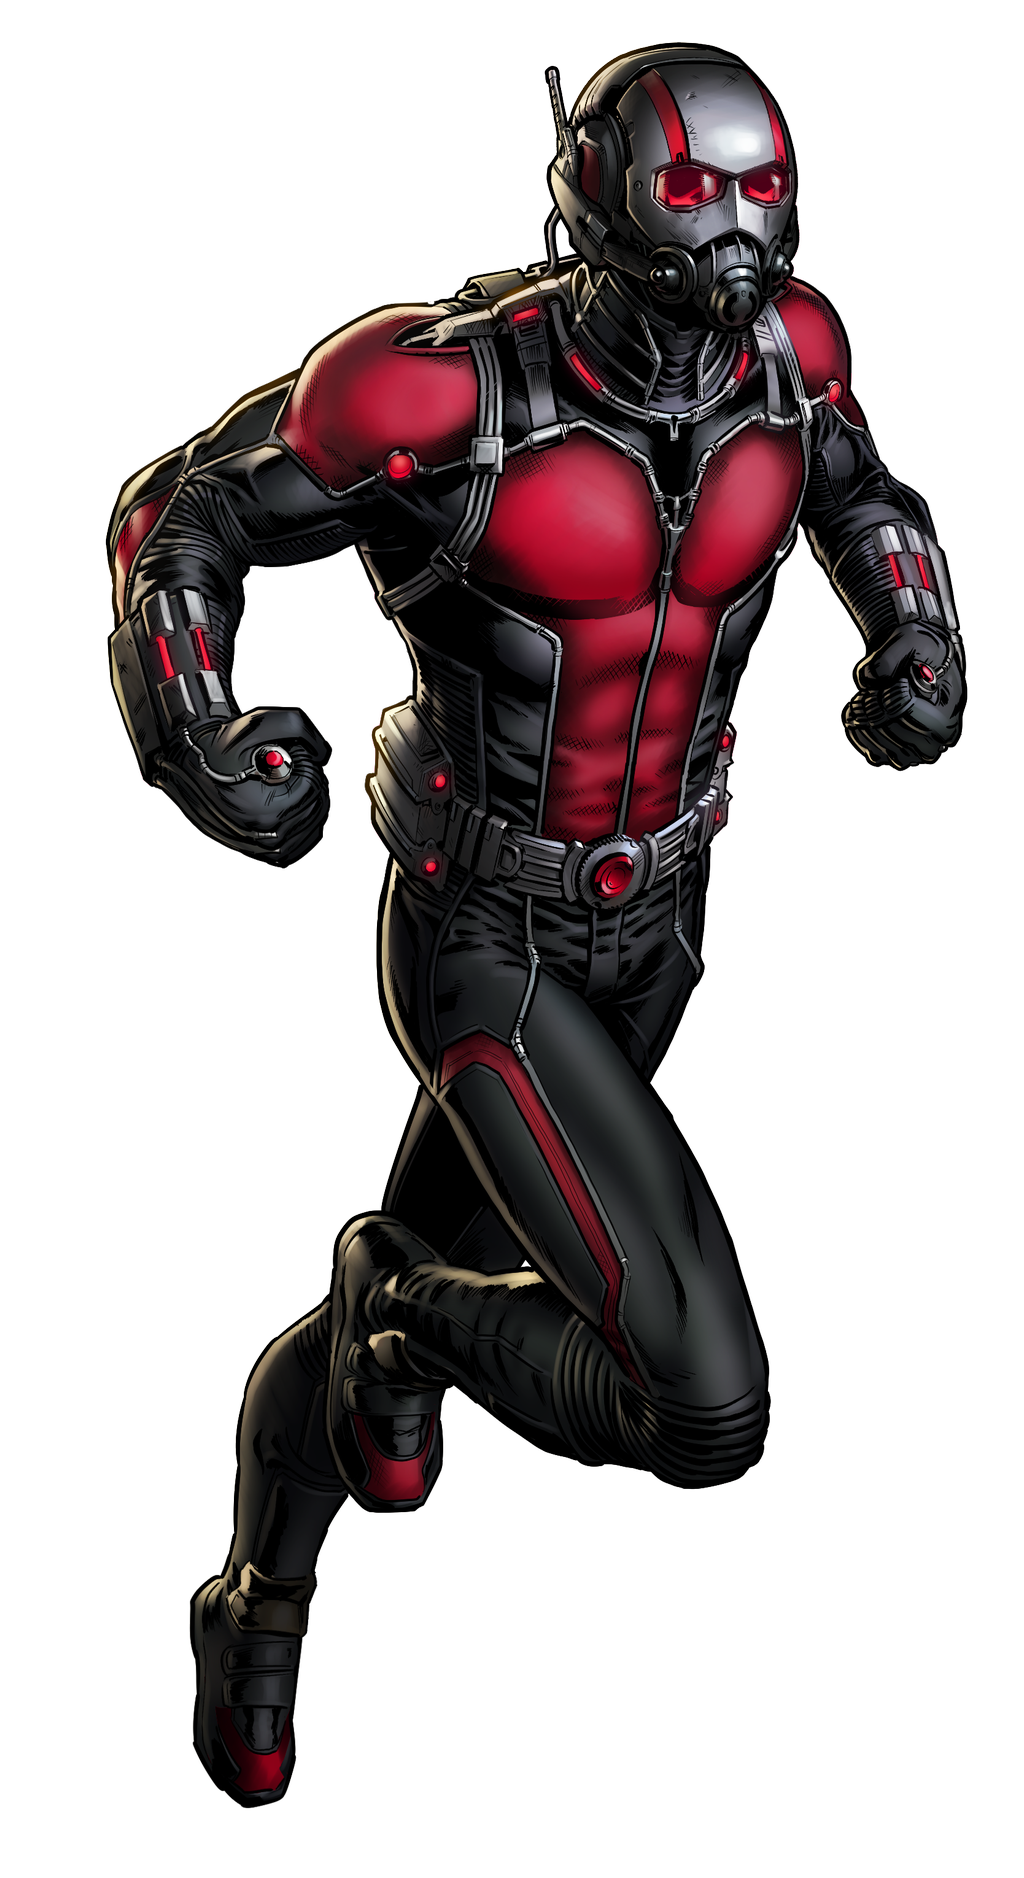 Ant man png. Image scott lang marvel